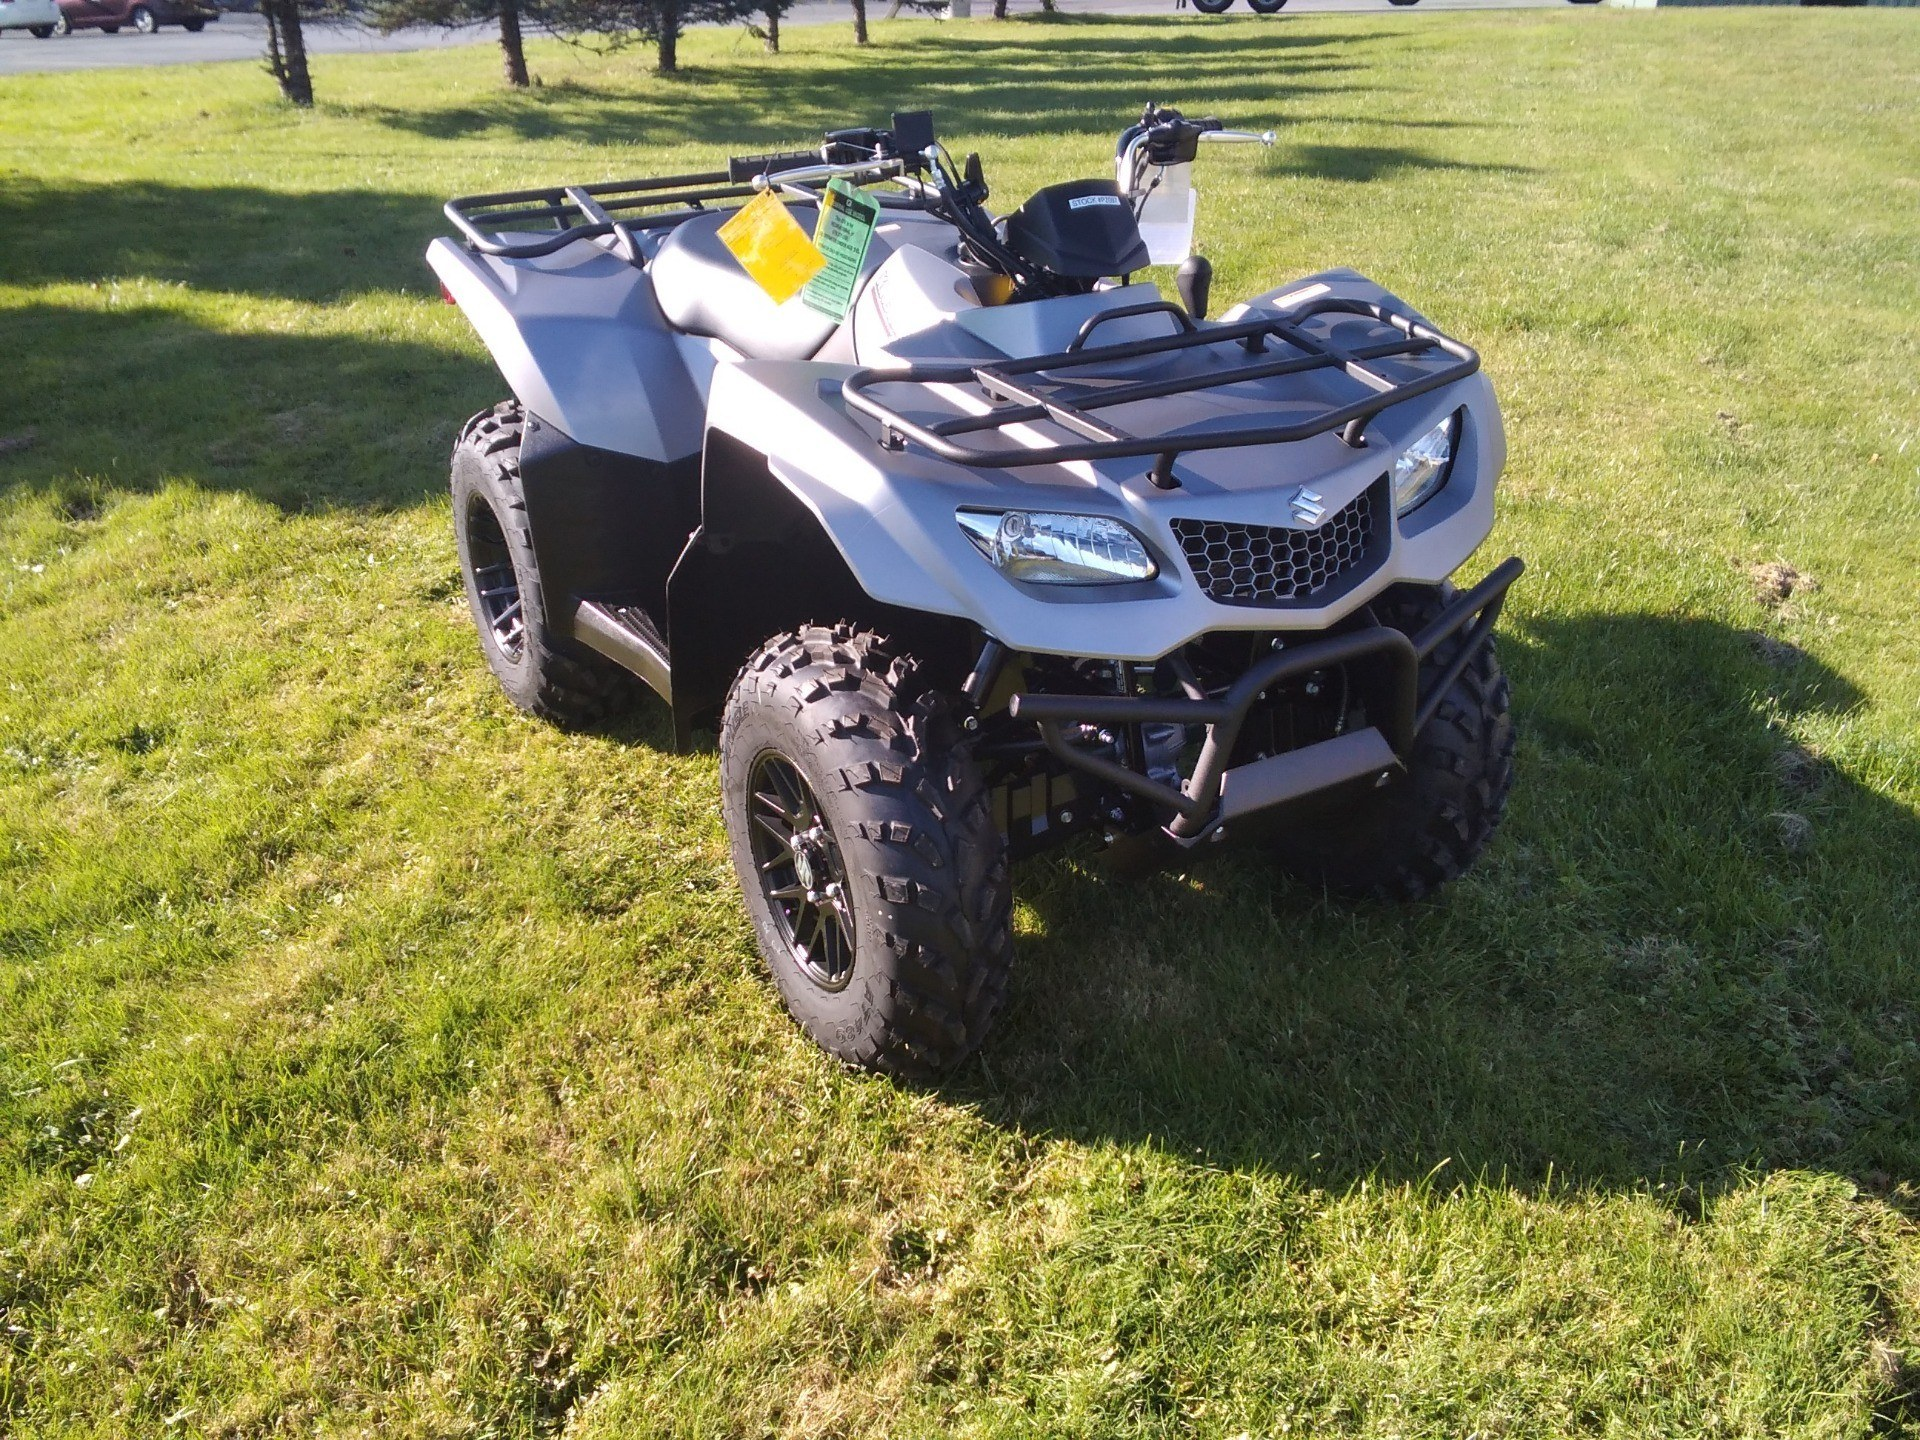 2021 Suzuki KingQuad 400ASi SE+ in Bartonsville, Pennsylvania - Photo 1